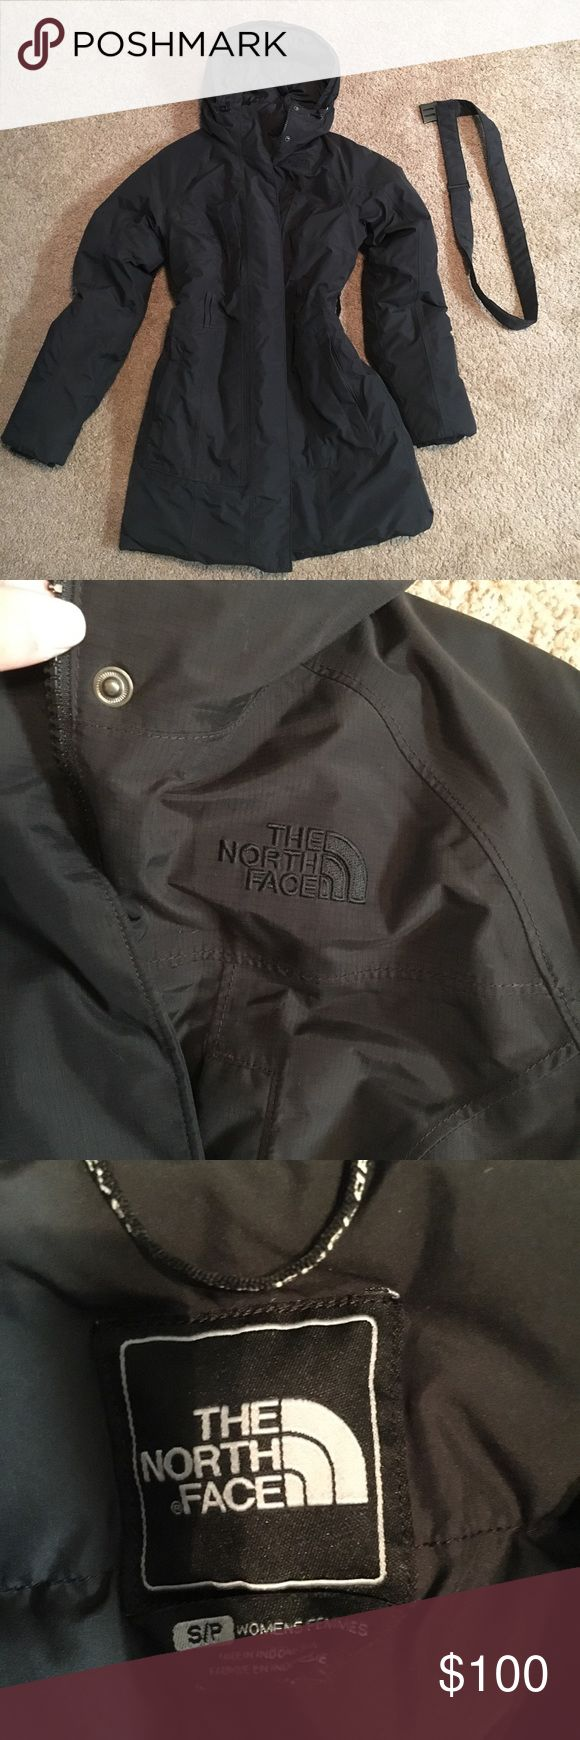 North Face Arctic Parka Jacket Dry Cleaned and in Fantastic Condition. Very gently worn with no stains or holes. Heavy weight and great for winter conditions. The Faux fur that was previously on the jacket is missing. Belt works you just have to bend the metal a little to insert the clips on each side. If you pull too hard the belt will come undone. Overall though the jacket is in great condition. North Face Jackets & Coats